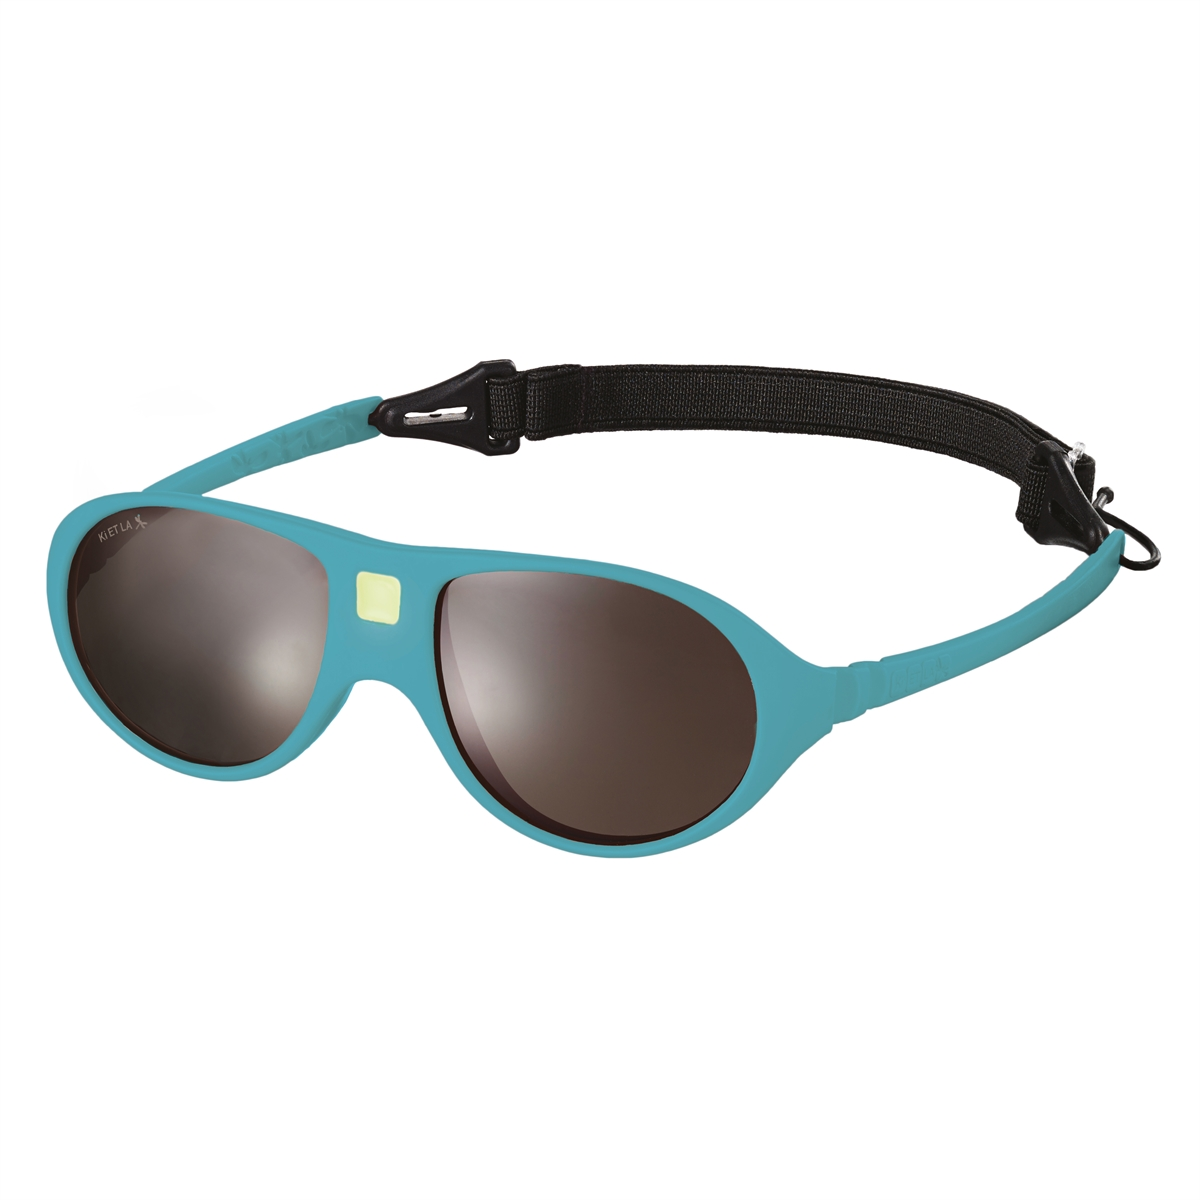 Mycey Unbreakable Sunglasses Ages 2-4 The Child To The Local Mass-Peacock Blue